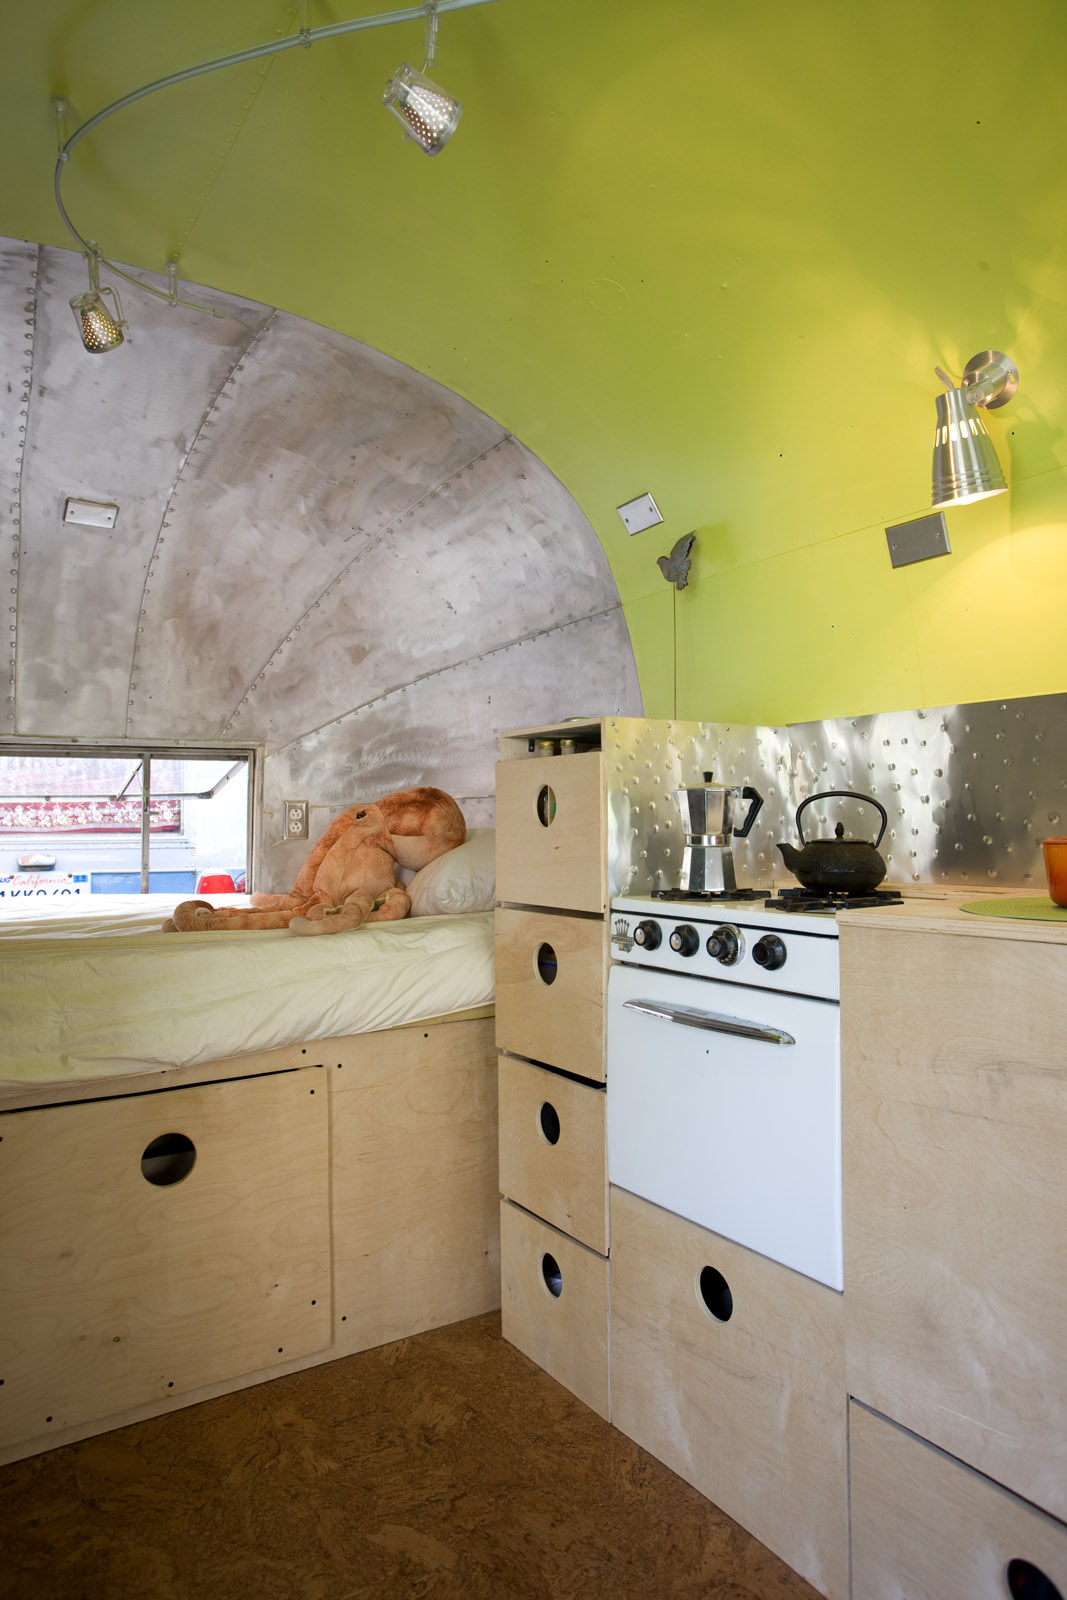 Old appliances were cleverly incorporated. Image Source: Dwell